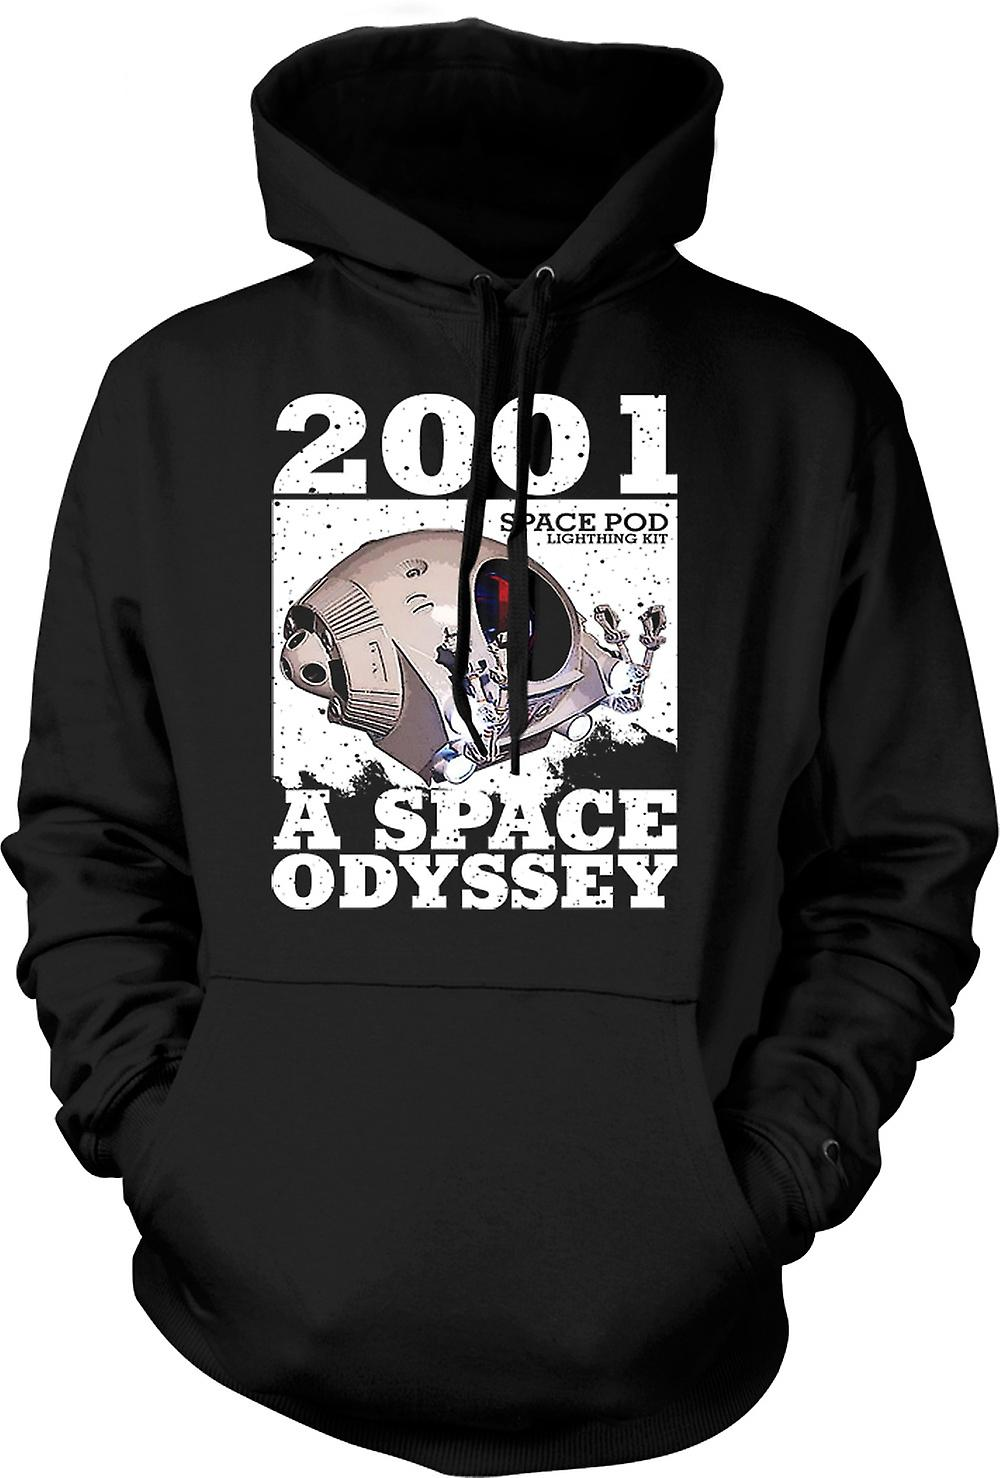 Mens Hoodie - 2001 Space Odyssey - Space Pod